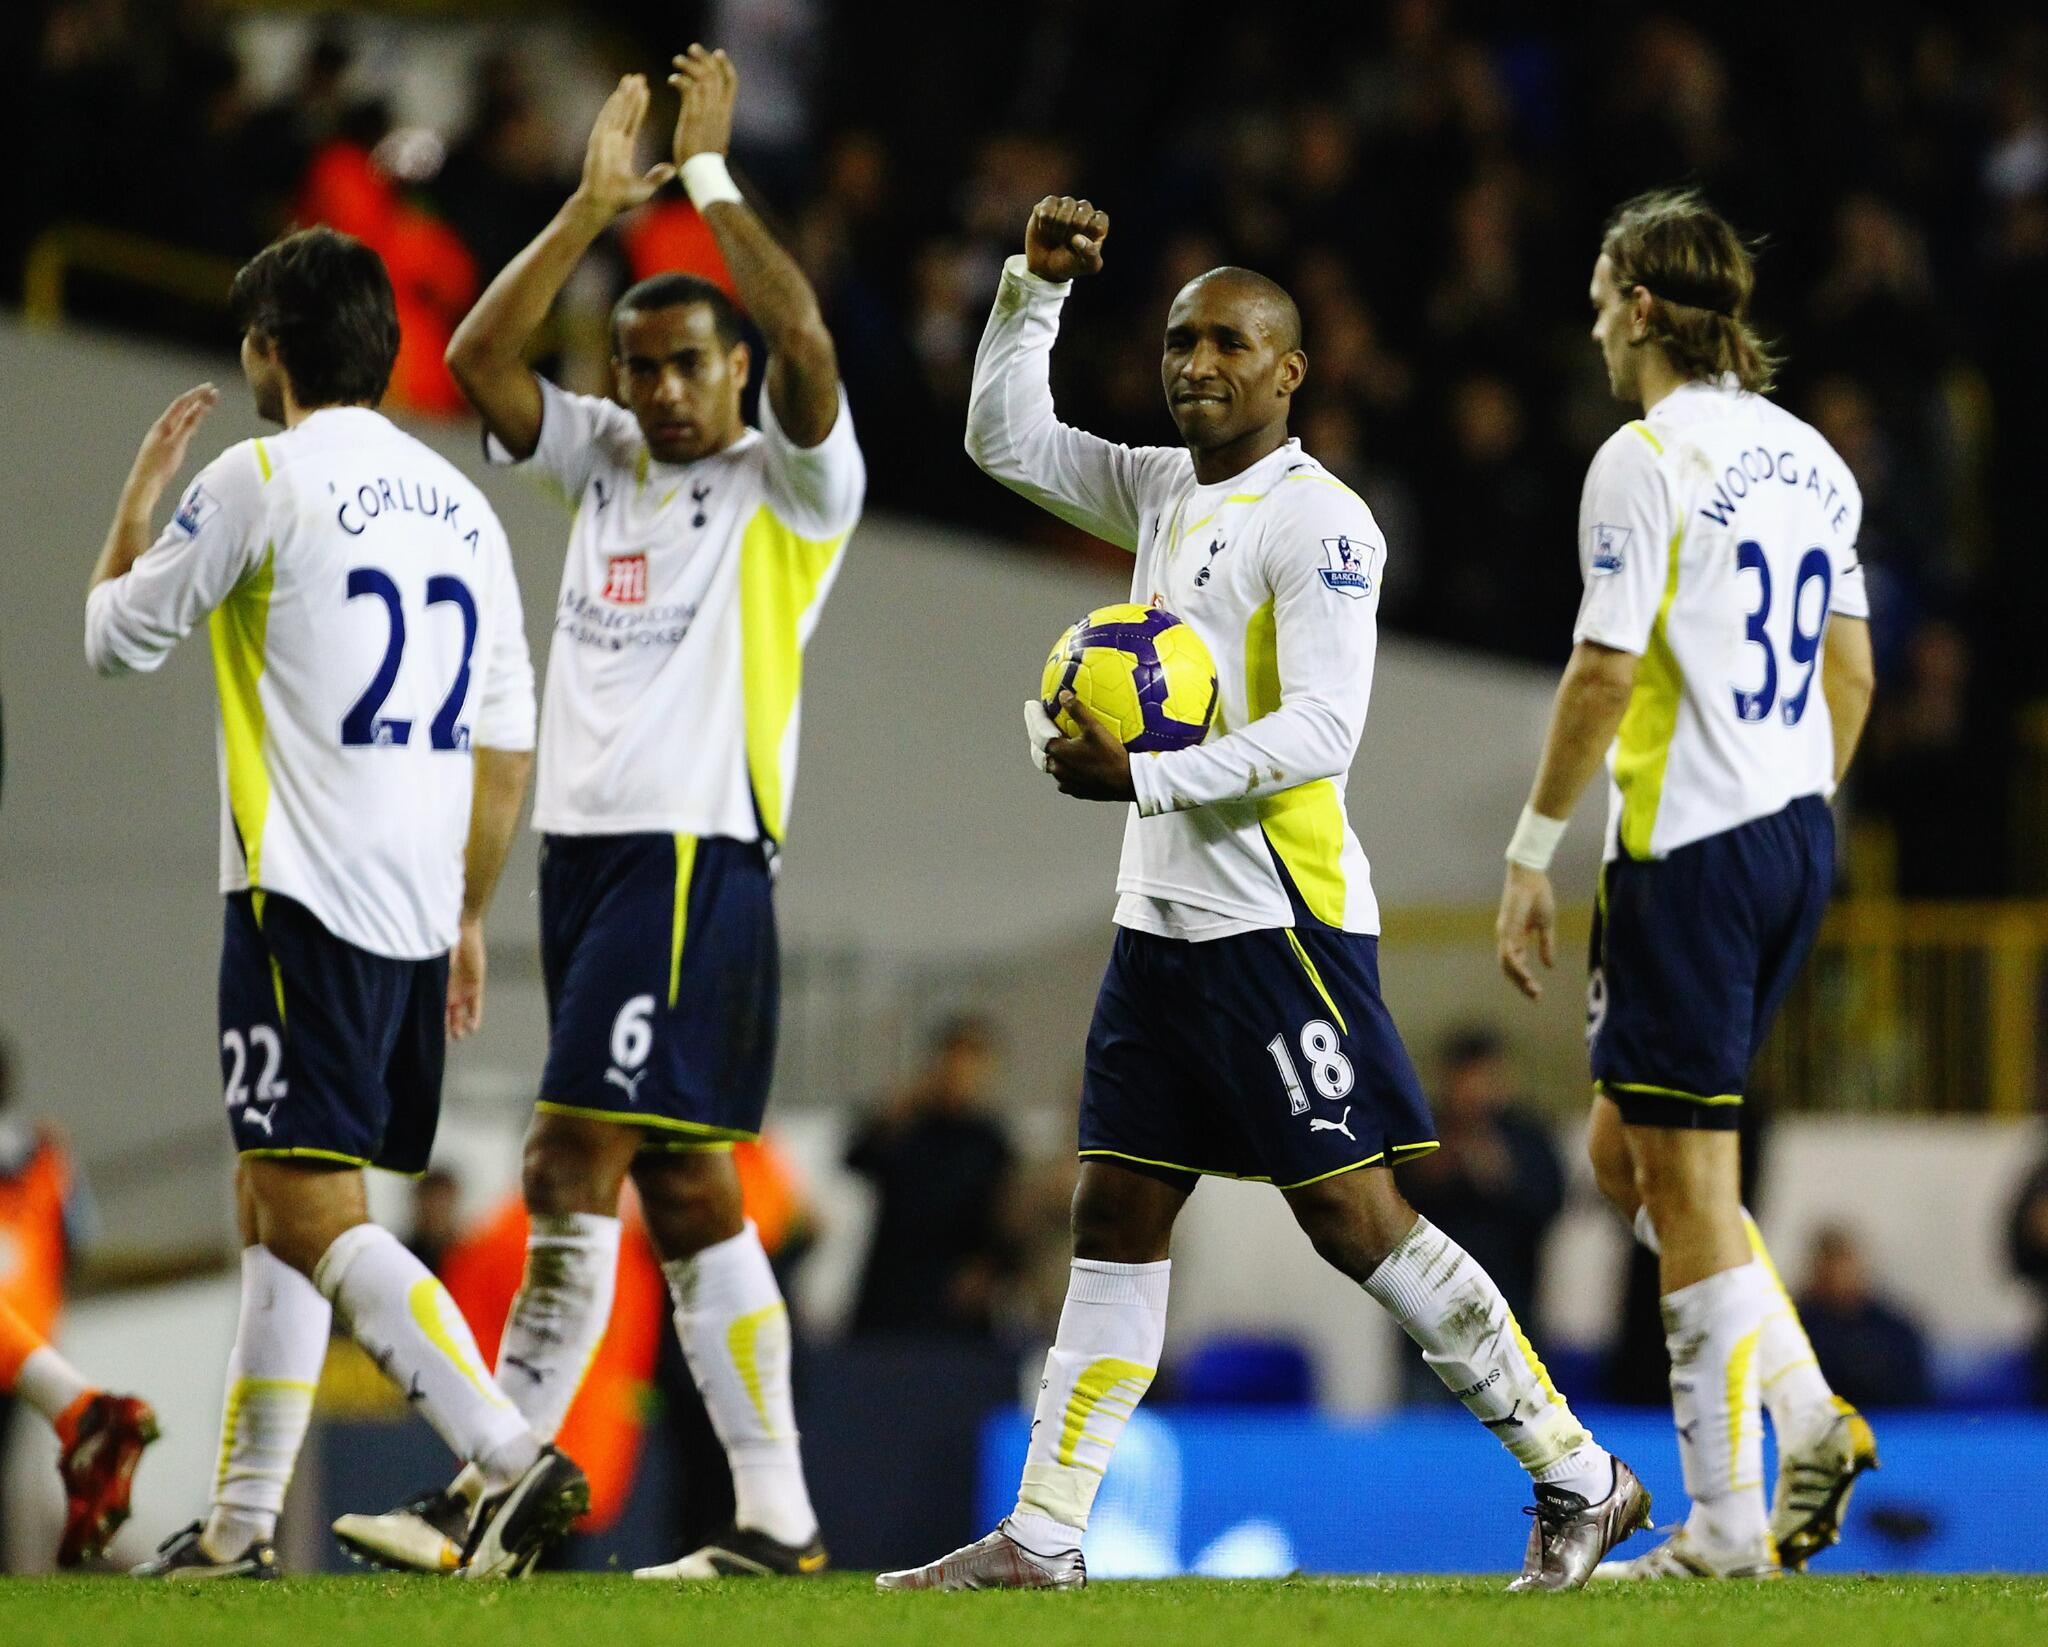 Defoe became the 4th player in #BPL history to score 5, emulating Andy Cole, Alan Shearer and Dimitar Berbatov #THFC http://t.co/zTV6KEoqkd